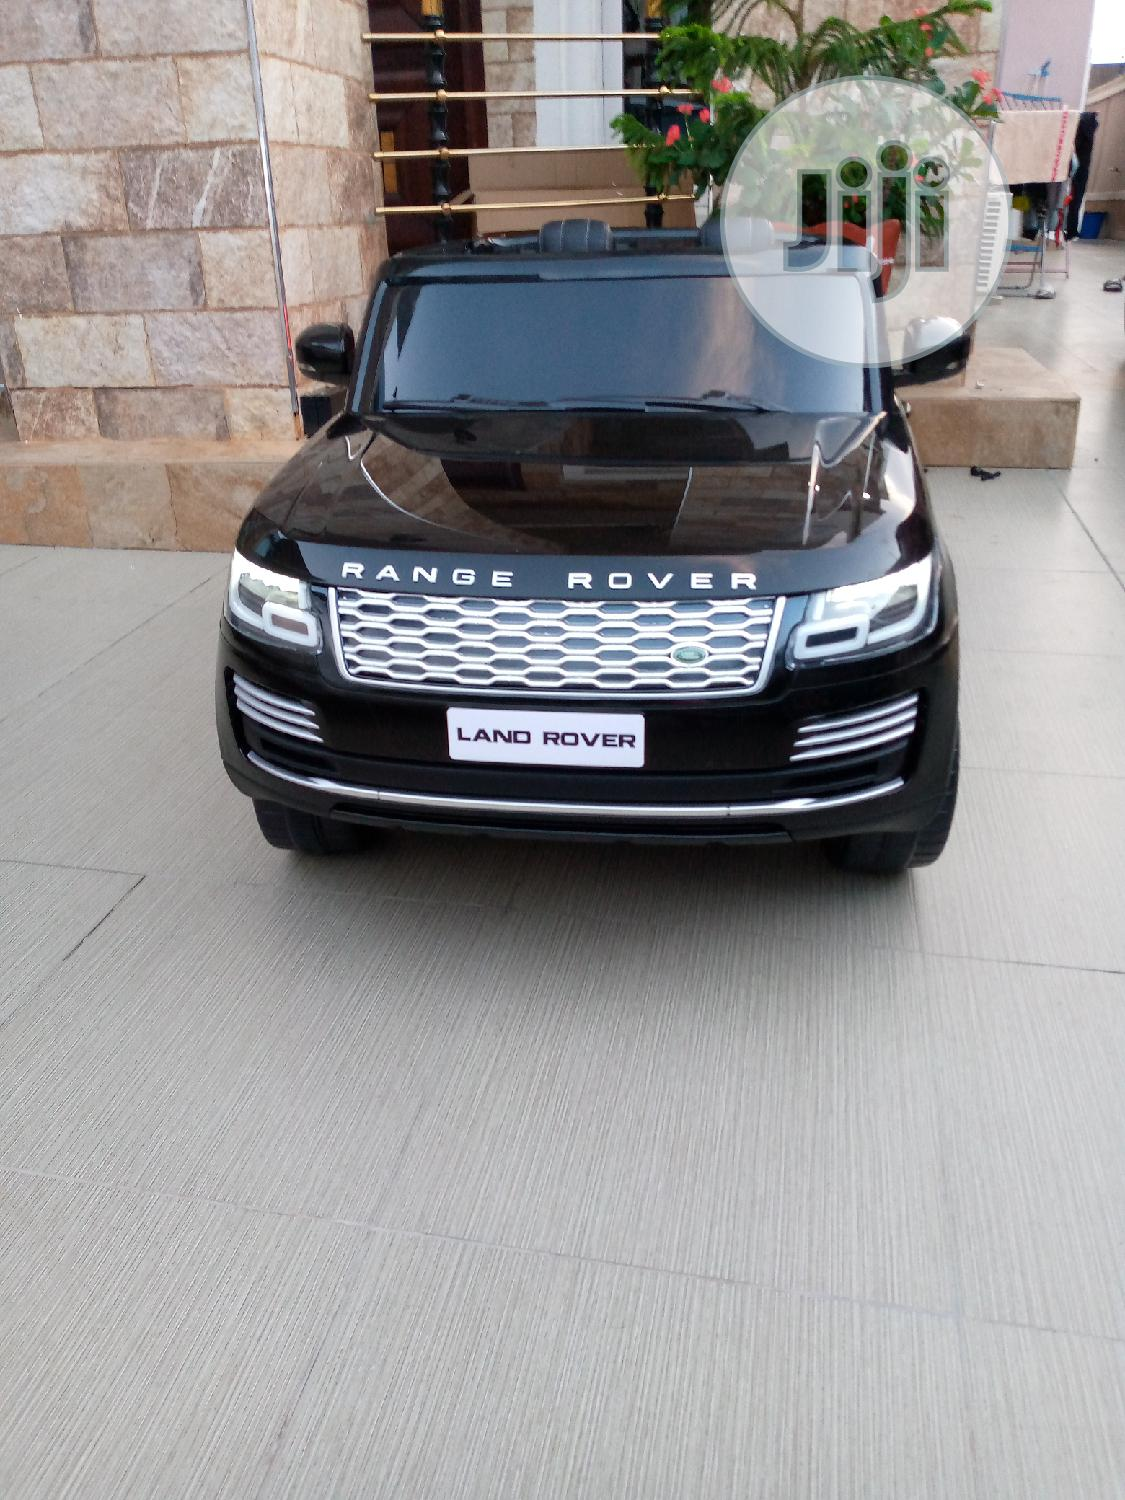 RANGE ROVER (Electric Toy Car)